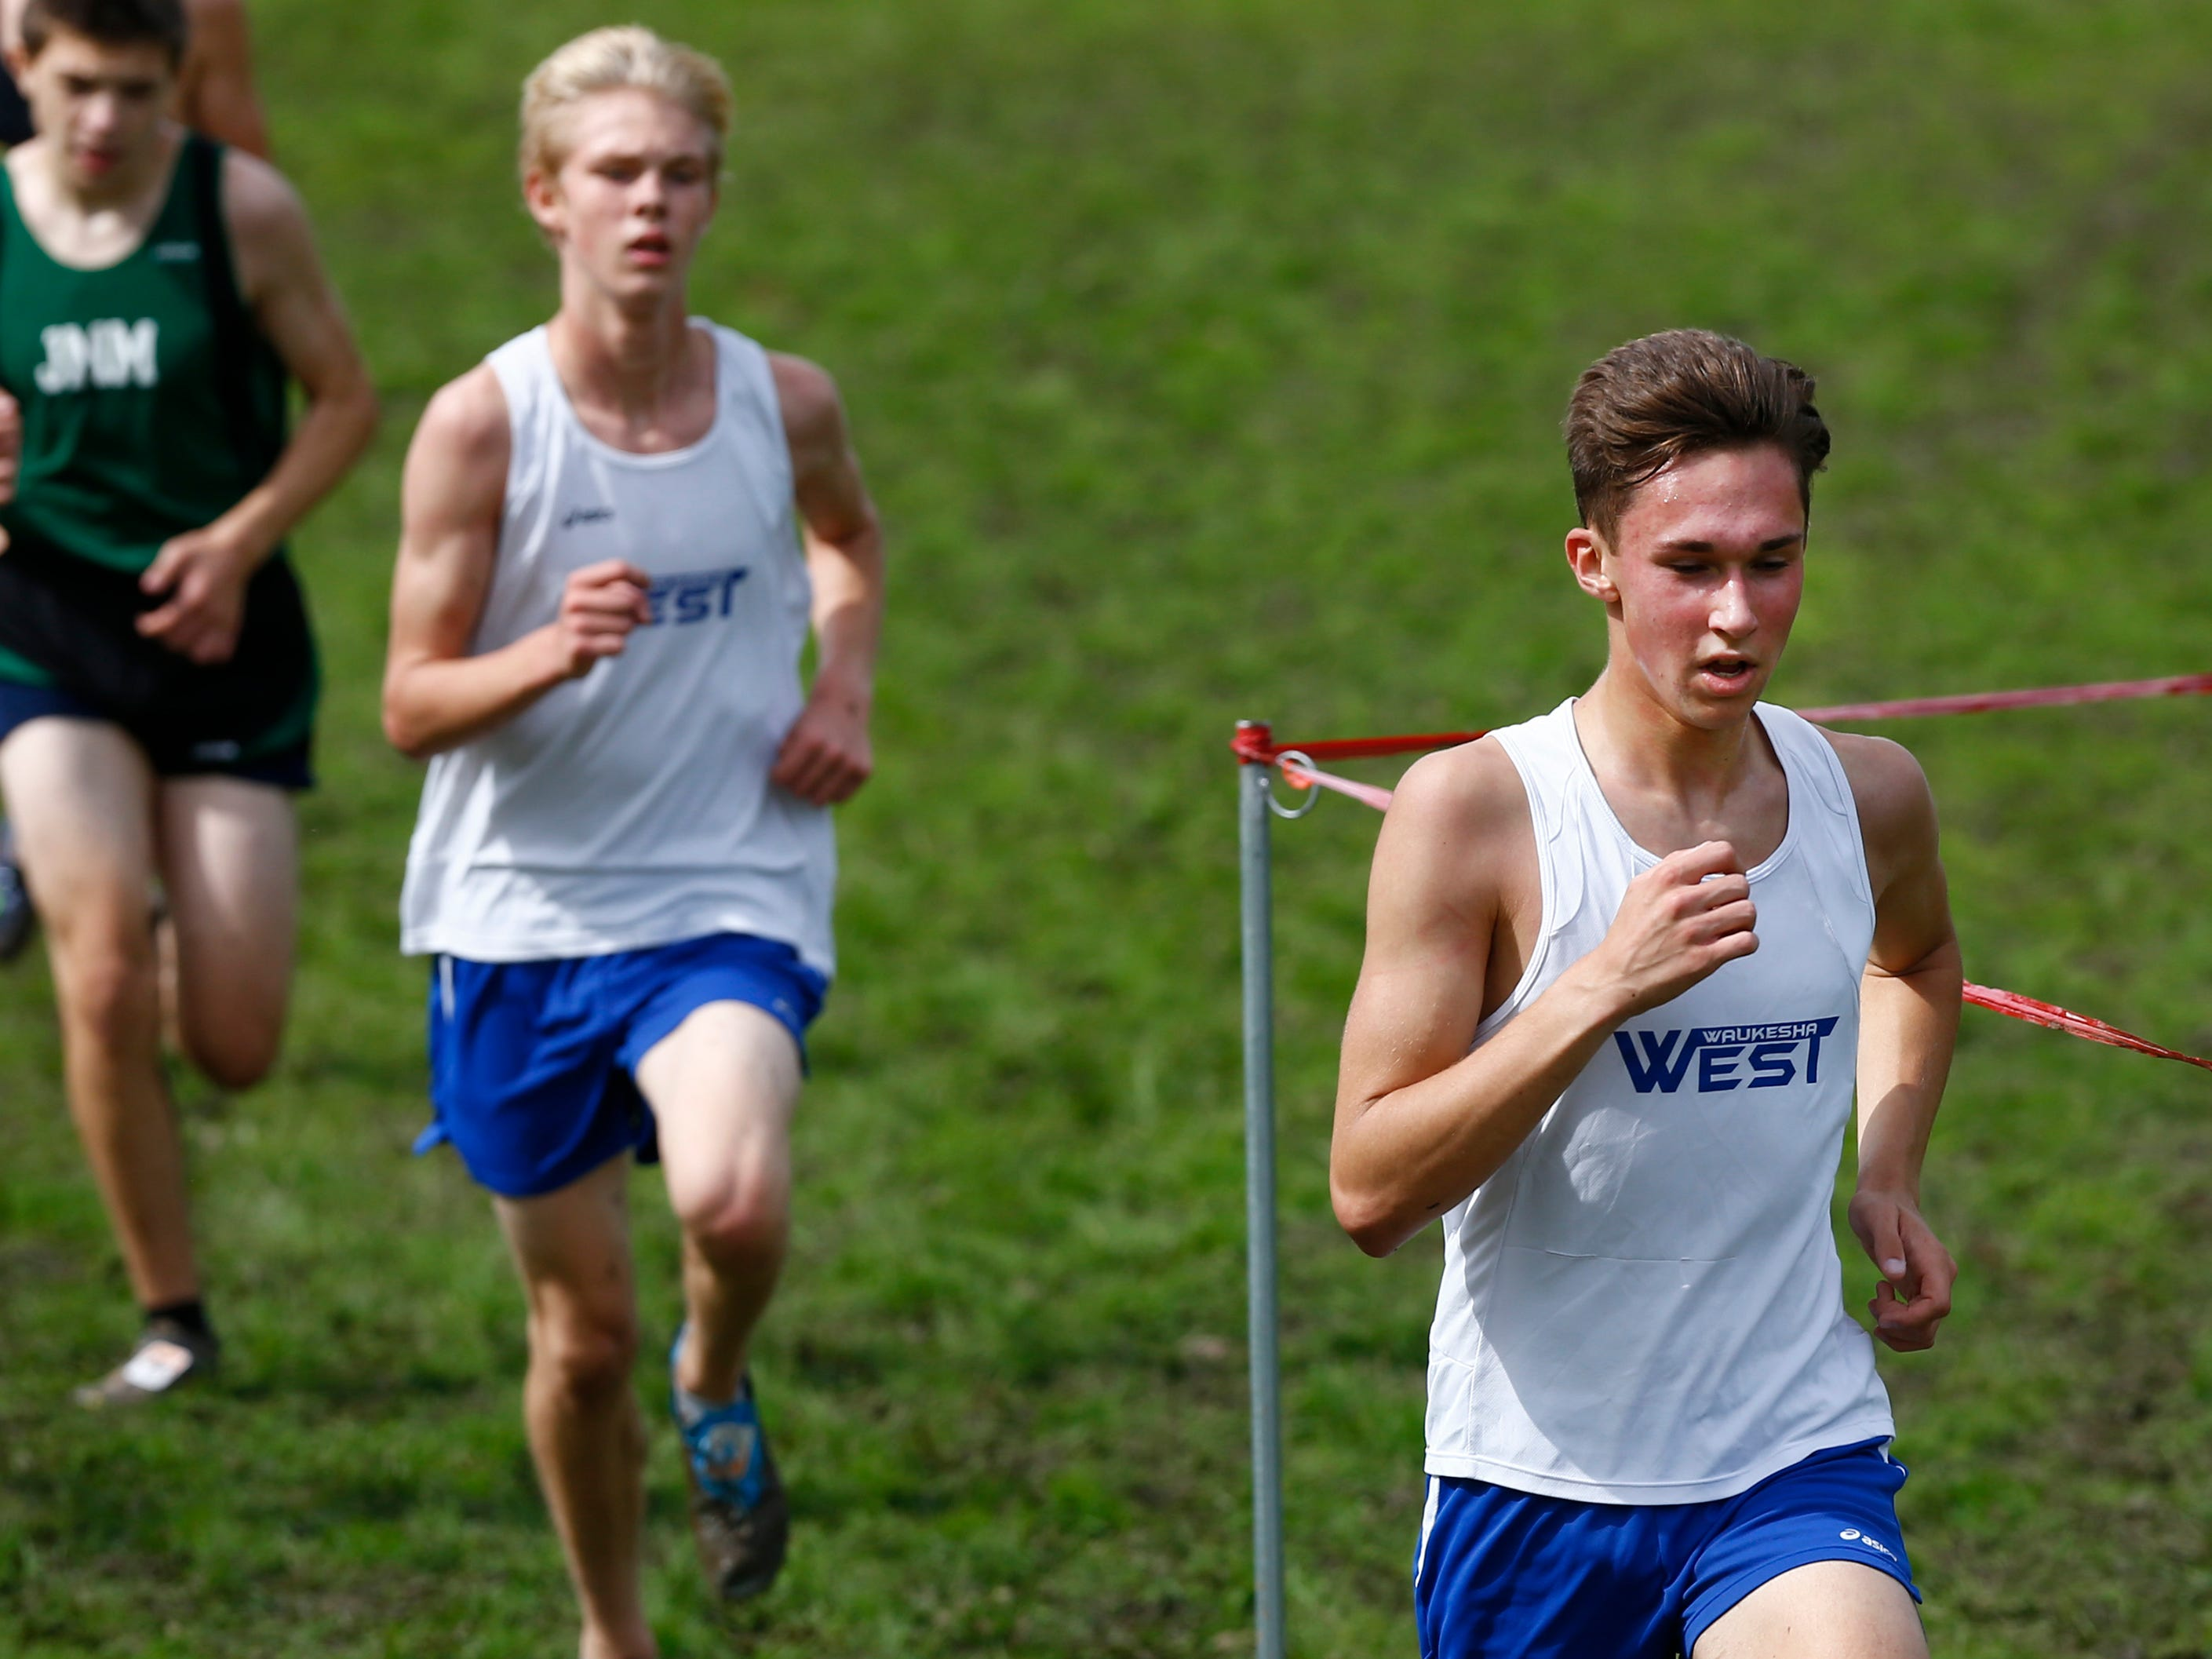 Waukesha West's Jake Richmond is trailed by Landen Bratt in the final stretch of the Menomonee Falls Matt Hadler Cross Country Invitational at Rotary Park where Richmond finished 22nd and Bratt 26th of 100 runners on Sept. 8.